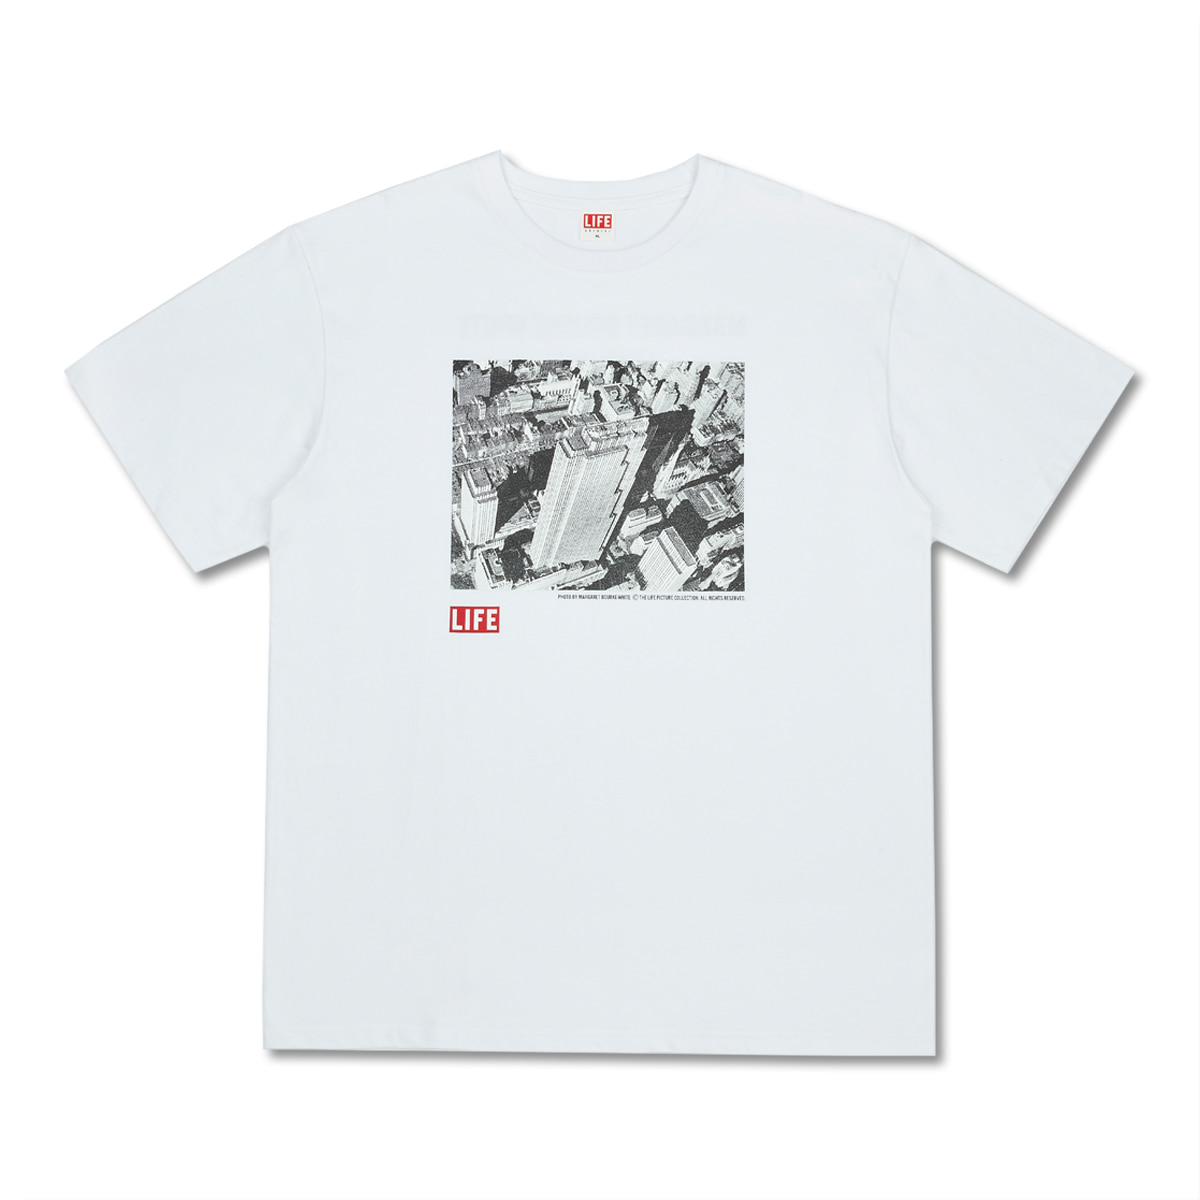 [LIFE ACHIVE] PHOTOGRAPHERS M.B.WHITE BLDG T-SHIRT 'WHITE'